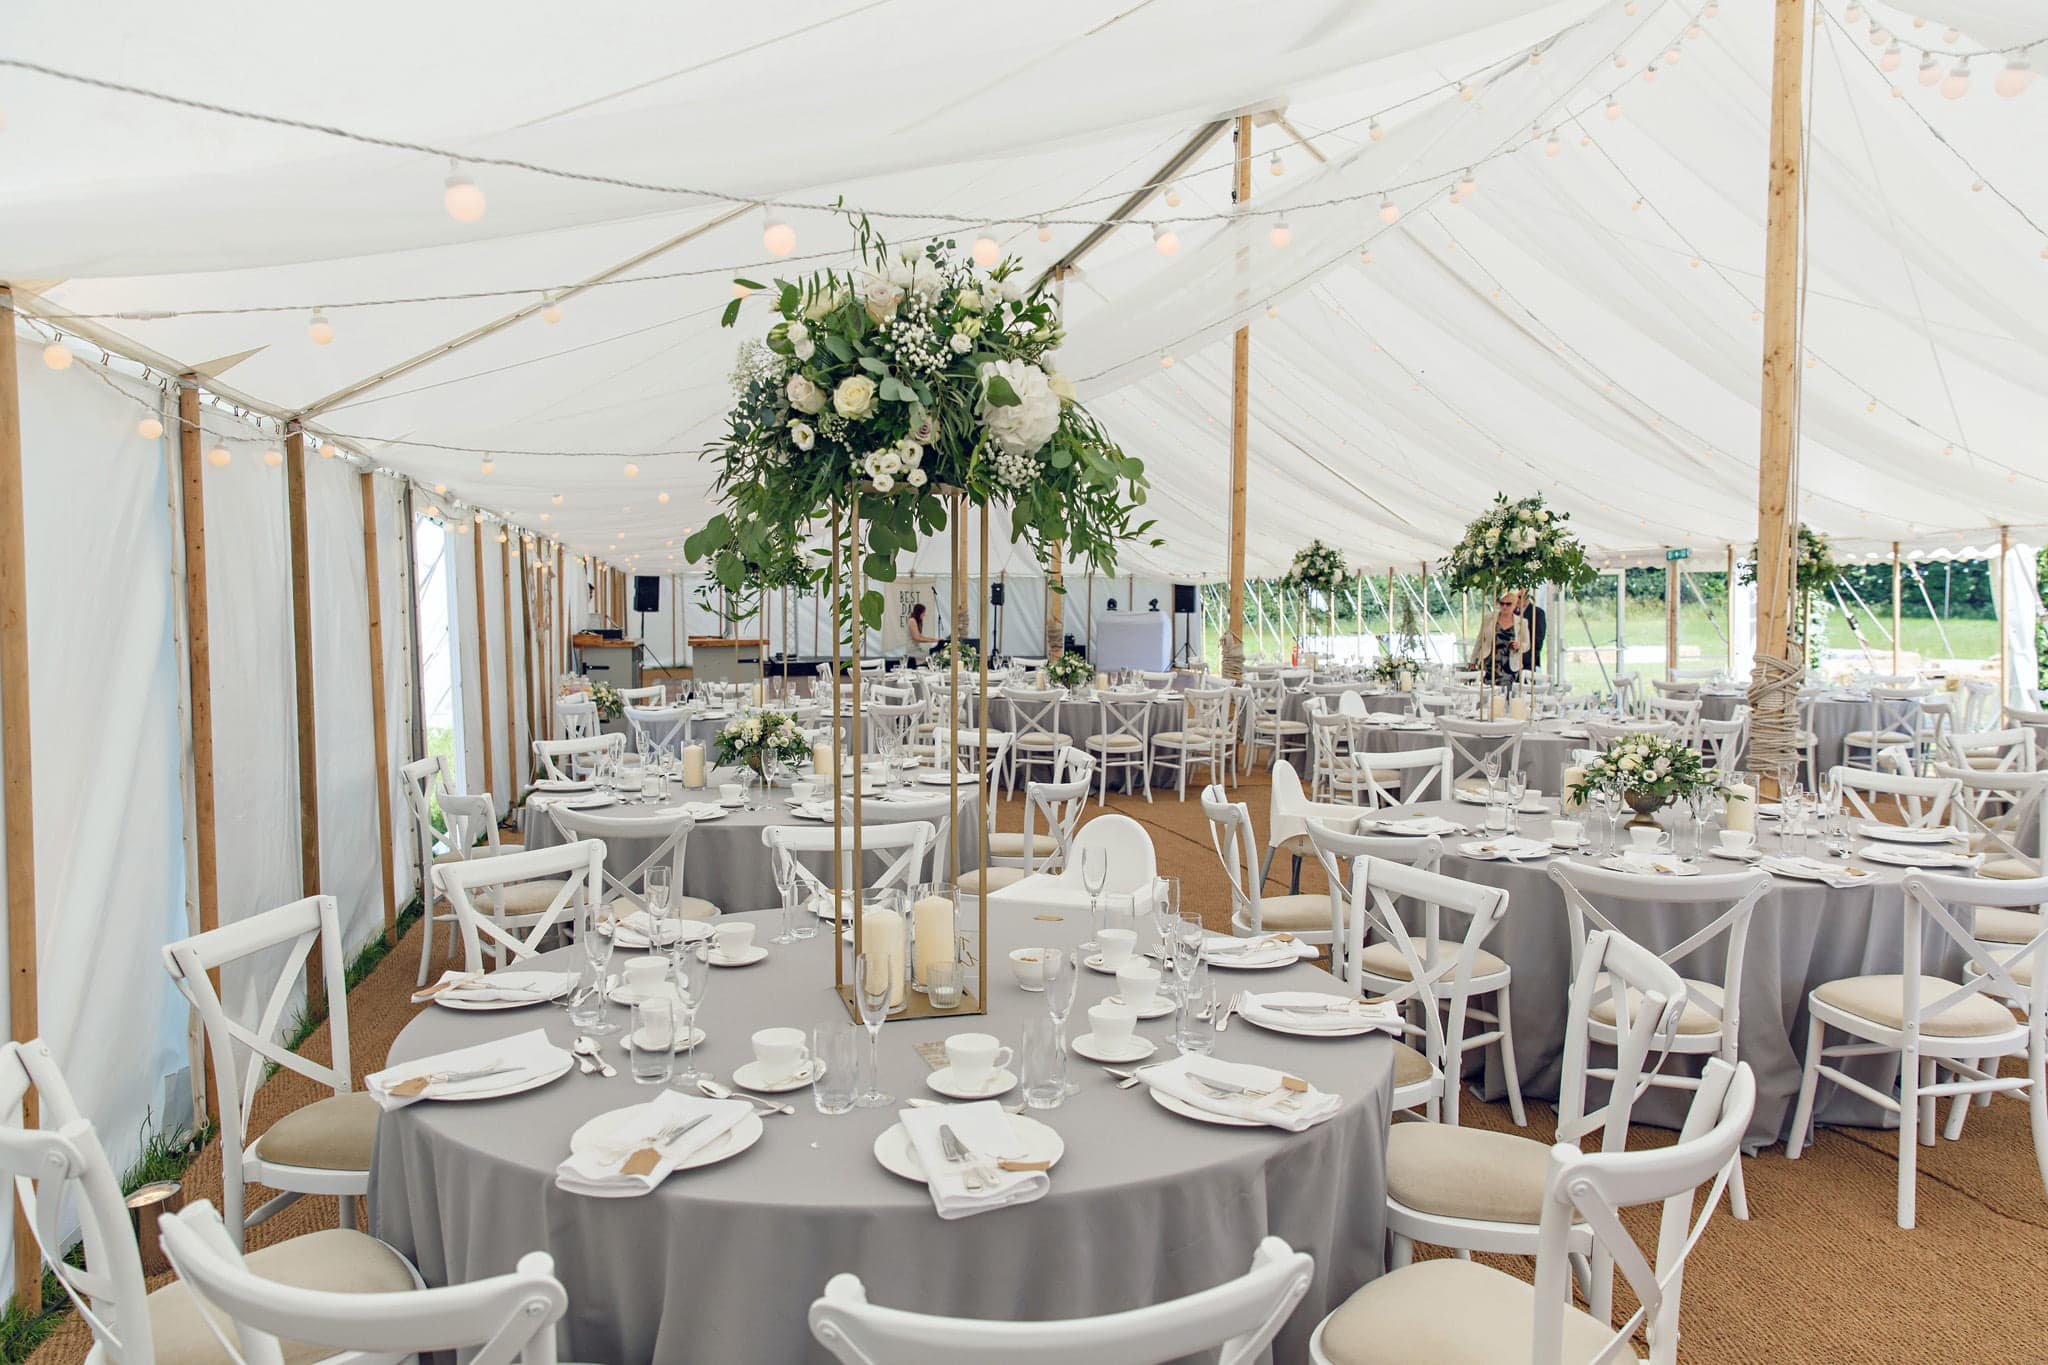 norfolk marquee wedding decorations with copper stands